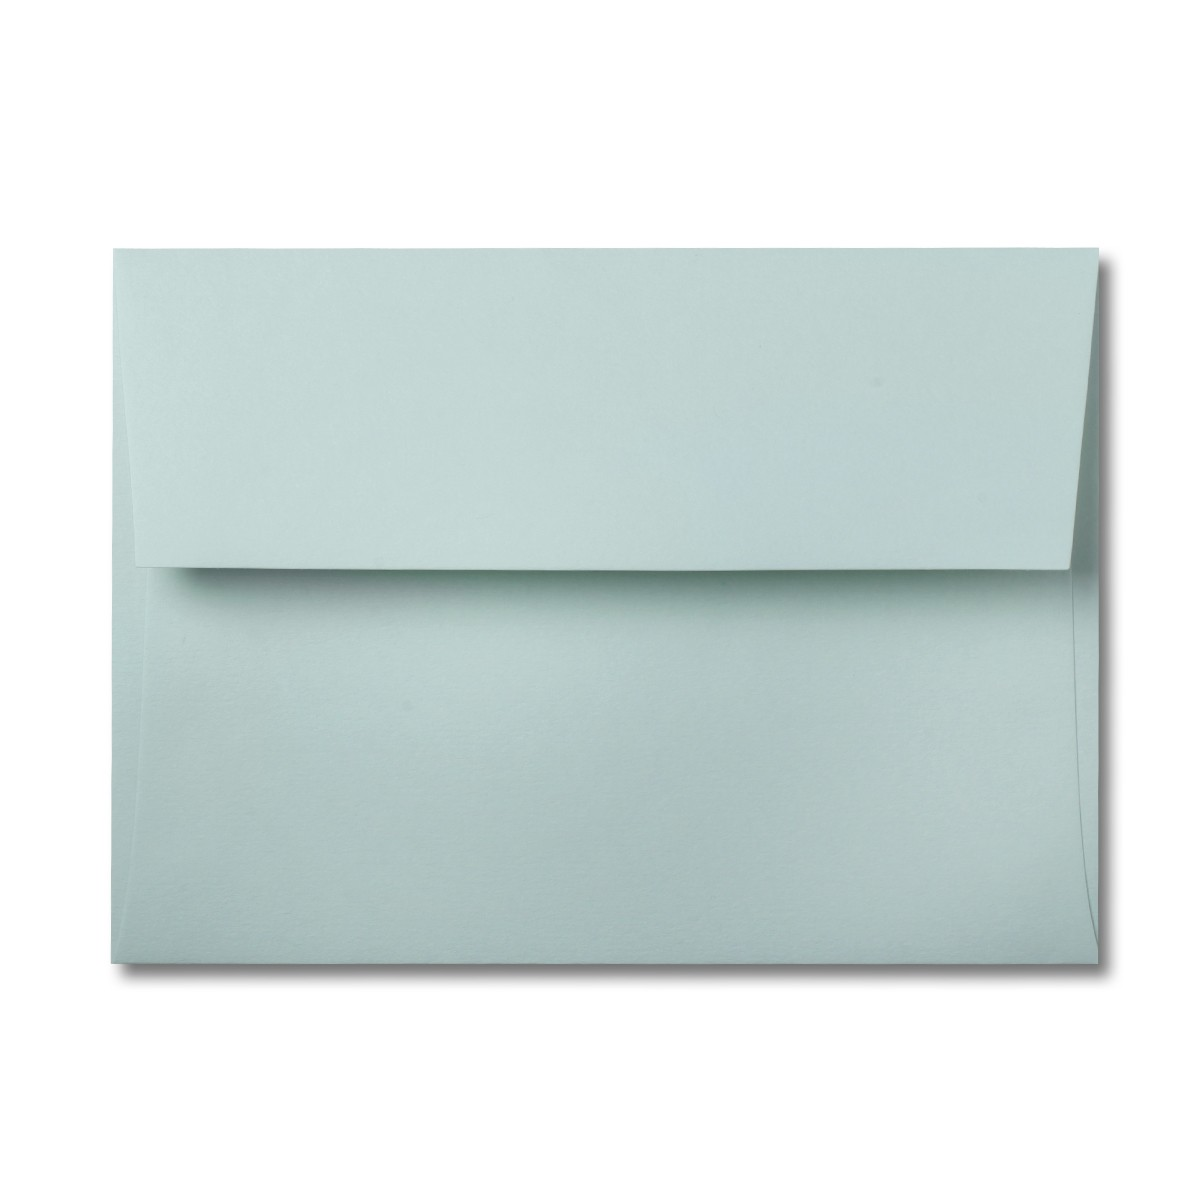 "Colorplan Powder Green A8 91# Text Envelopes (5 1/2"" x 8 1/8"") Bulk Pack of 250"